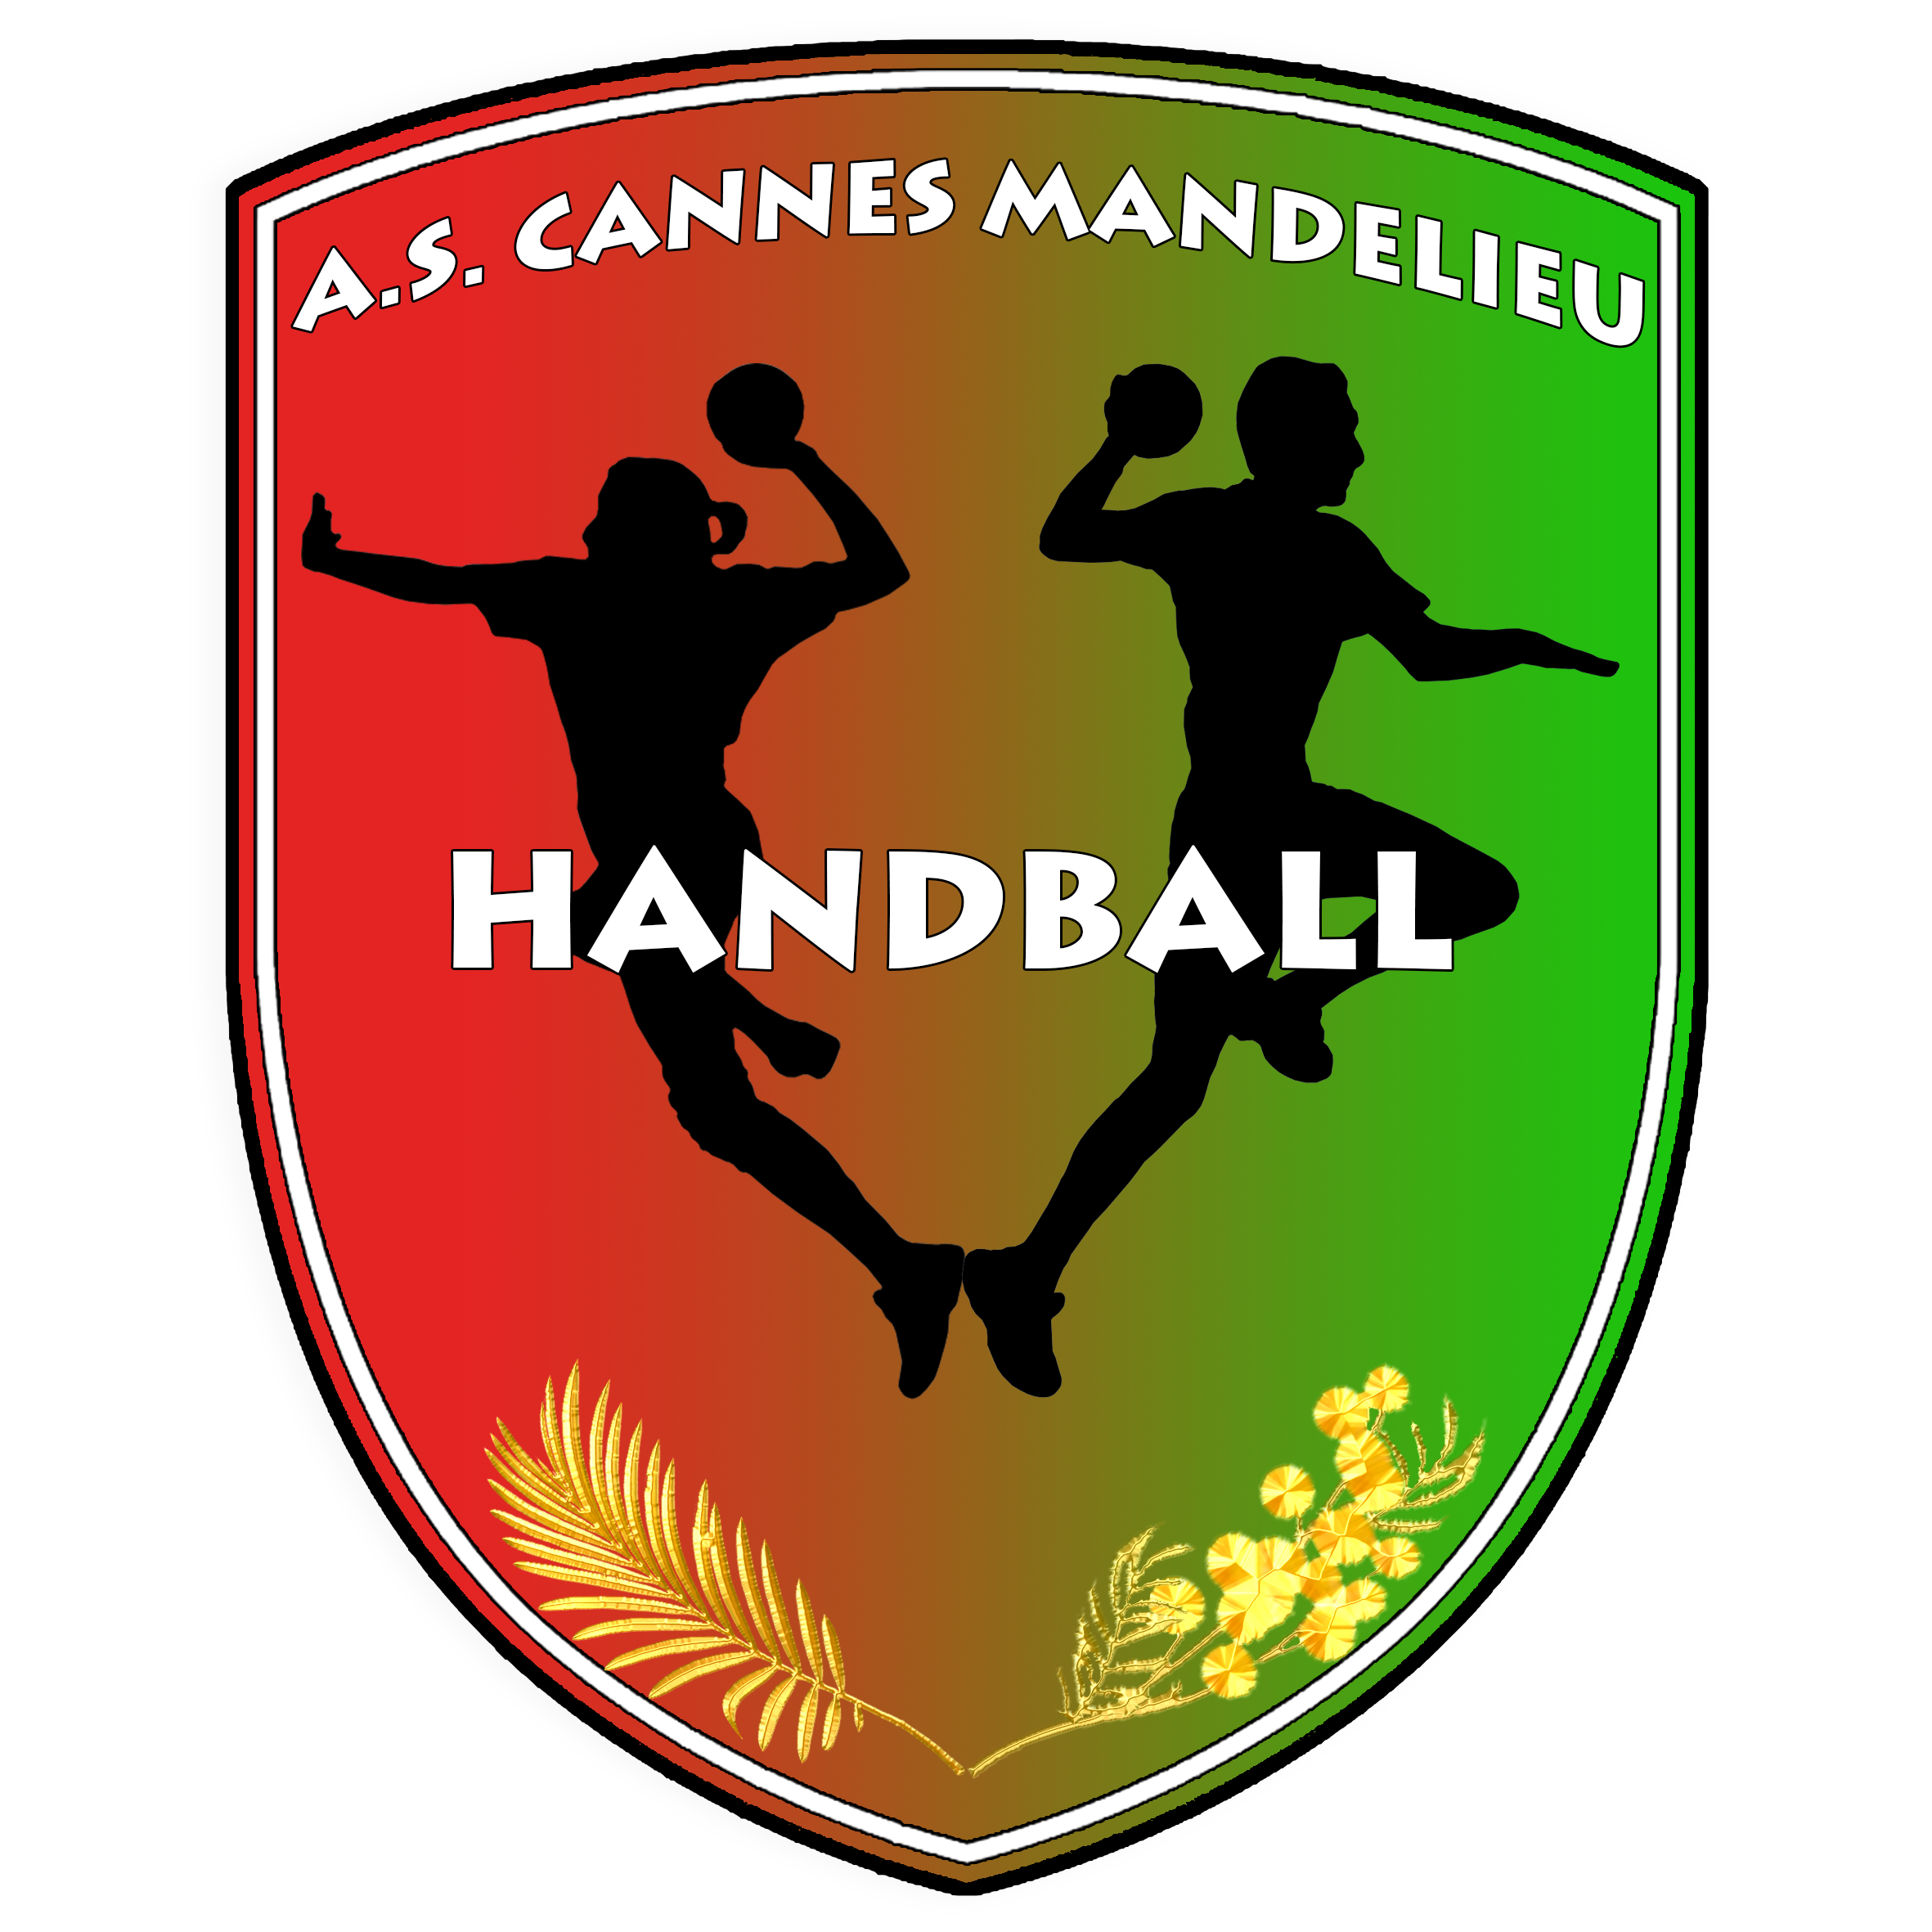 AS CANNES MANDELIEU HANDBALL